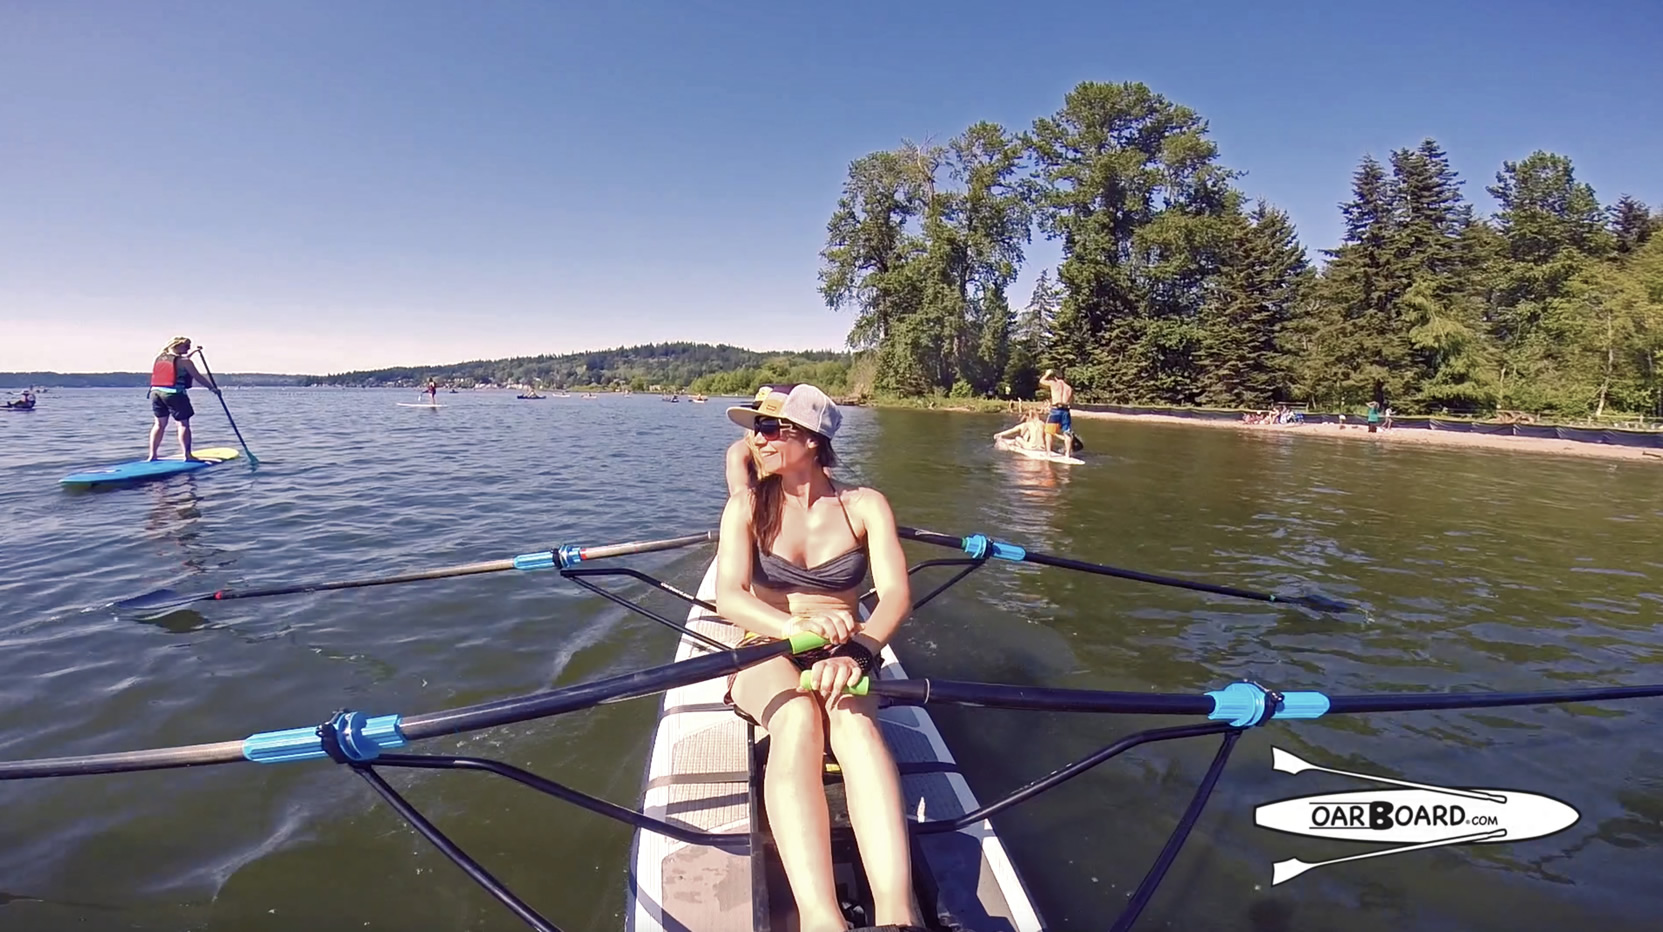 Diana-Lesieur-Oar-Board-Stand-Up-Paddle-Board-Whitehall-Rowing-and-Sail-Adventure-Vacation-Lifestyle-Sammish